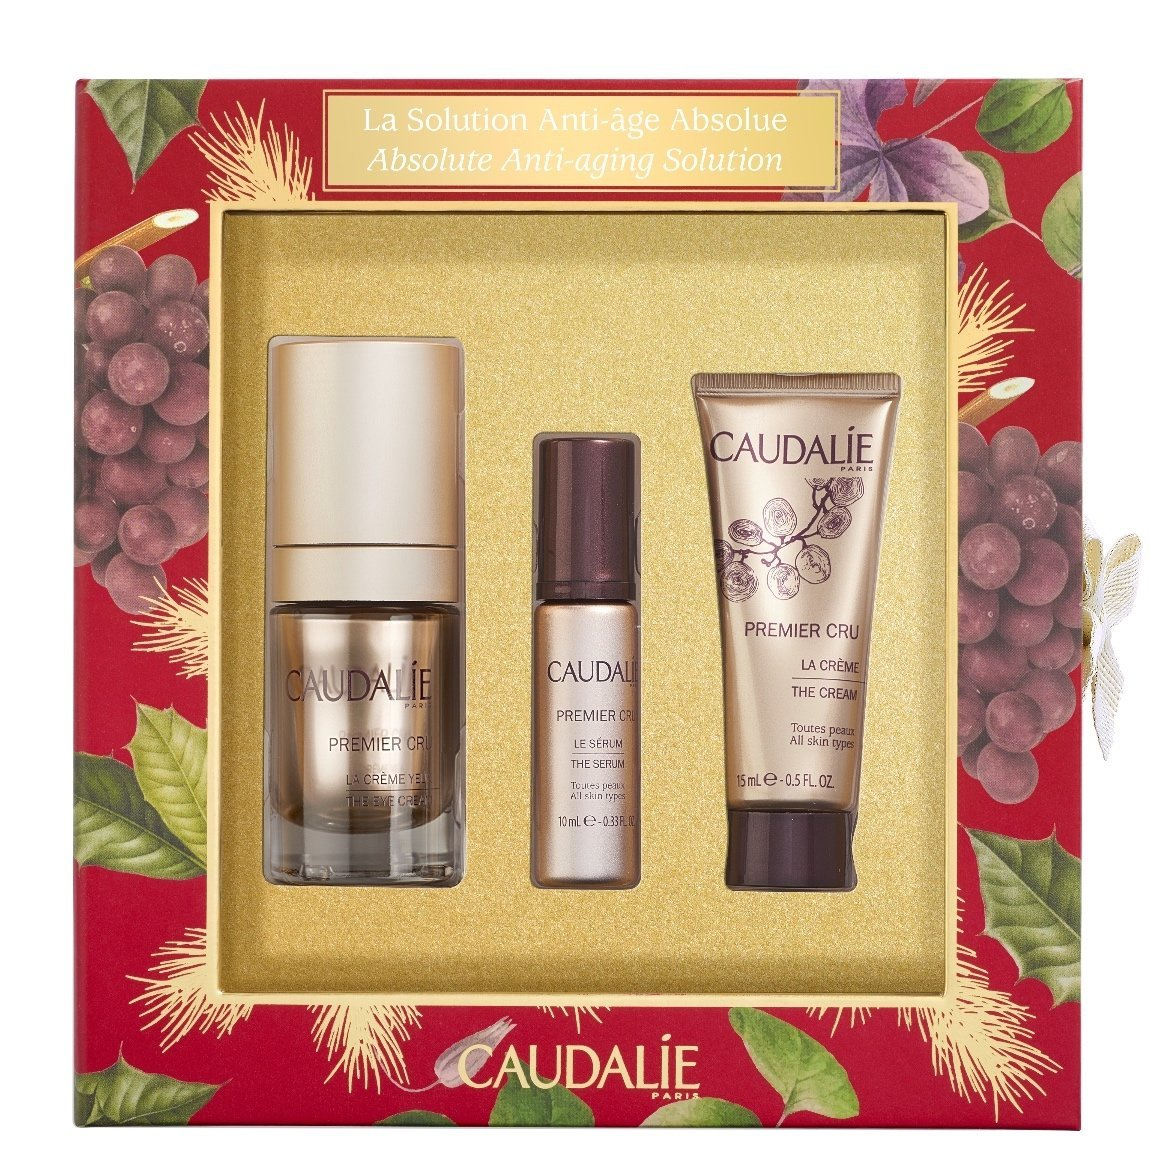 Caudalie Premier Cru Absolute Anti-Aging Solution Set product swatch.